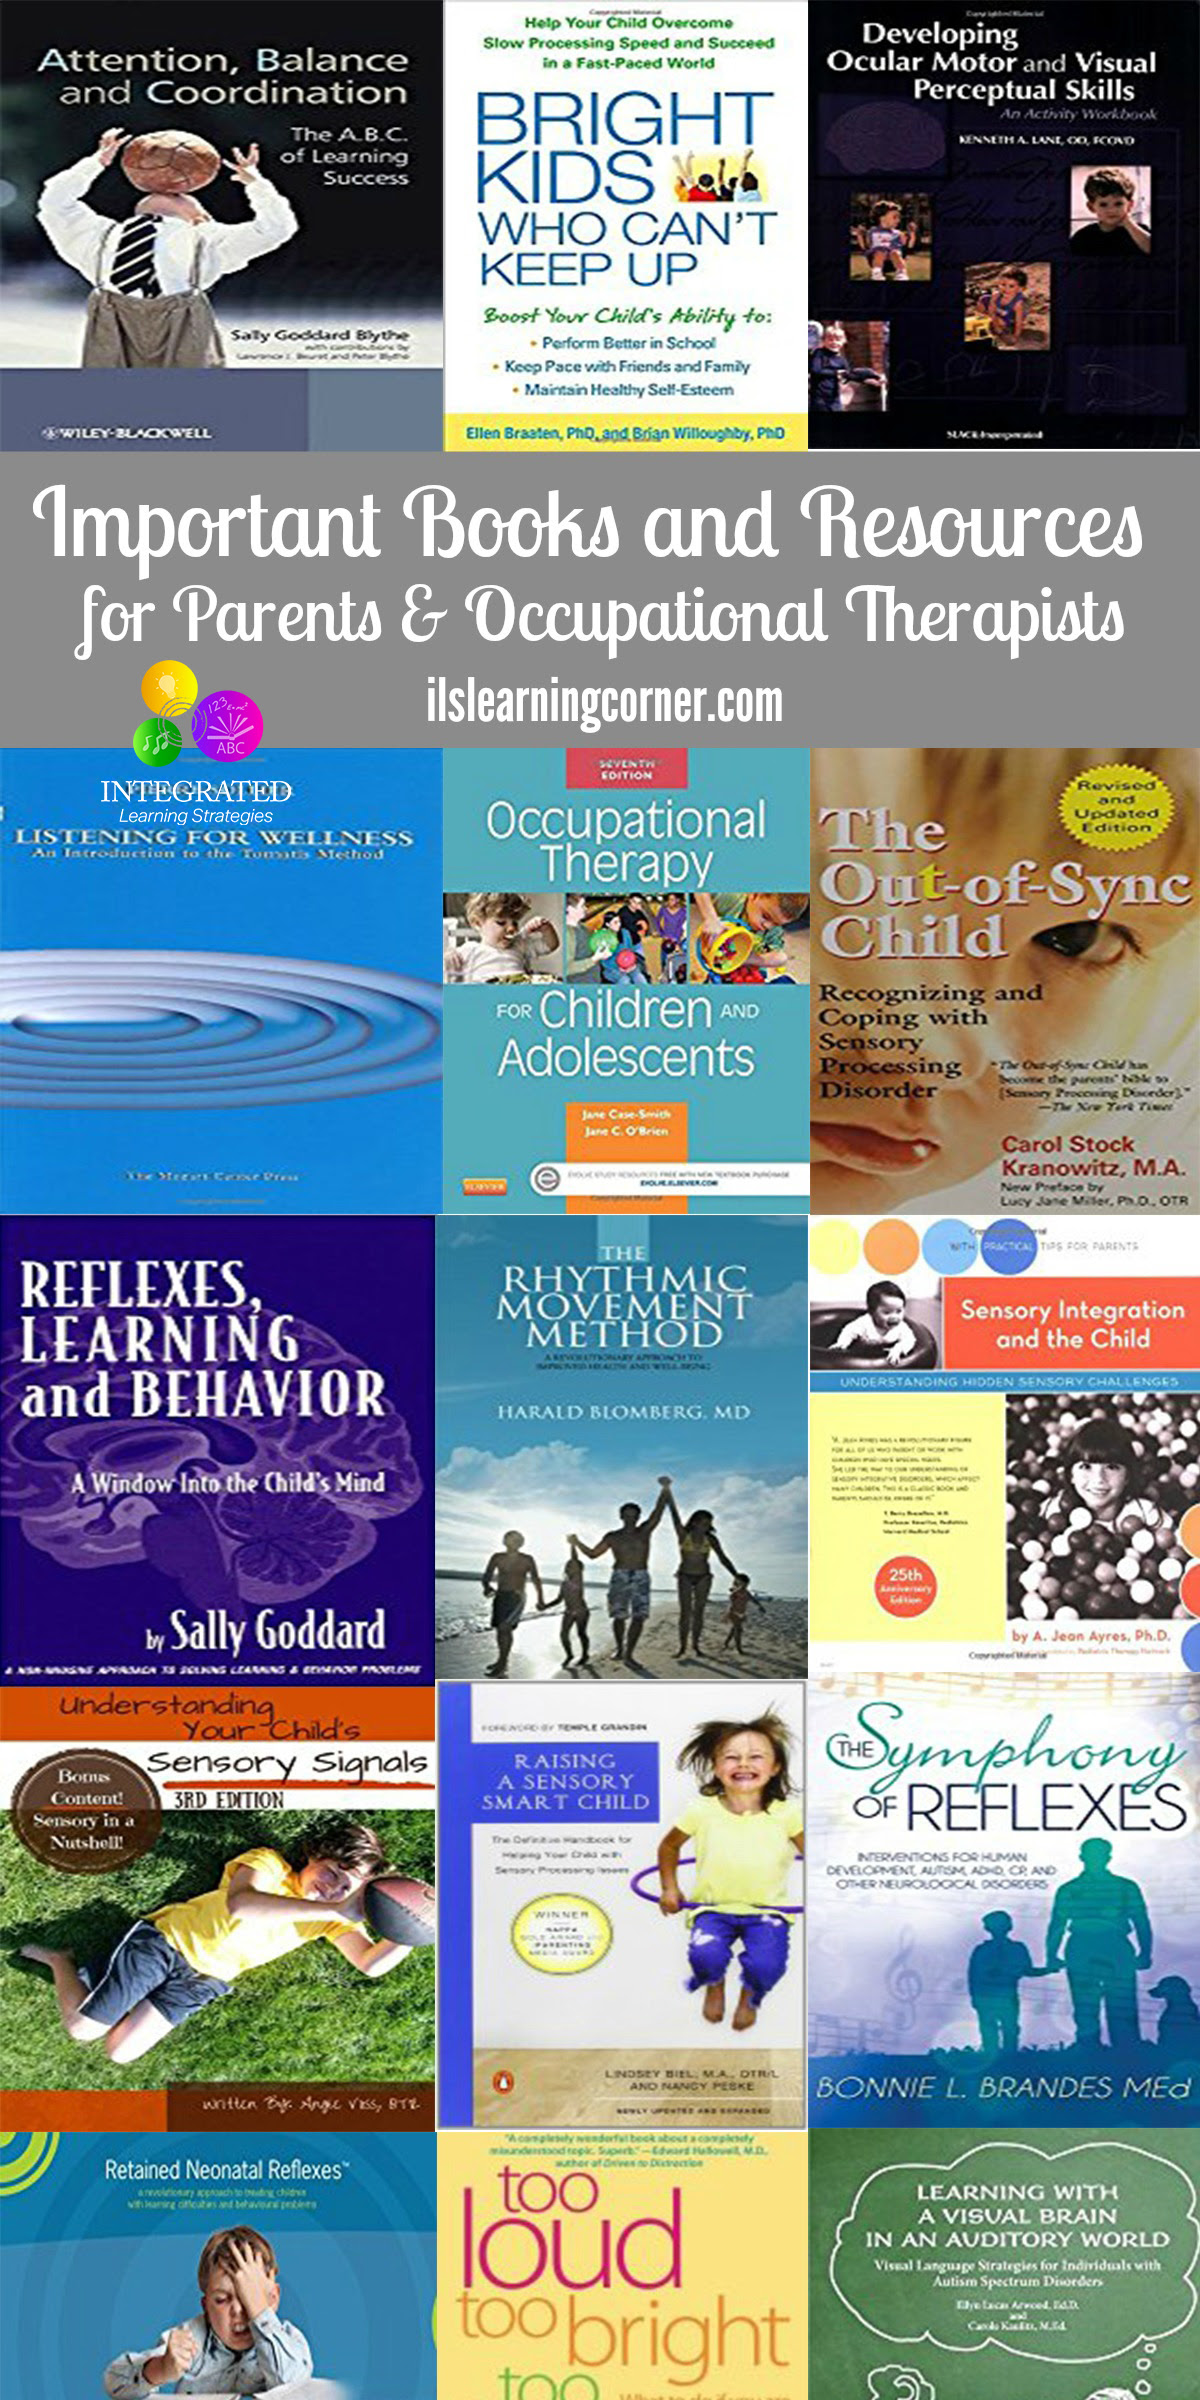 Books and Resources for Occupational Therapists, Parents ...